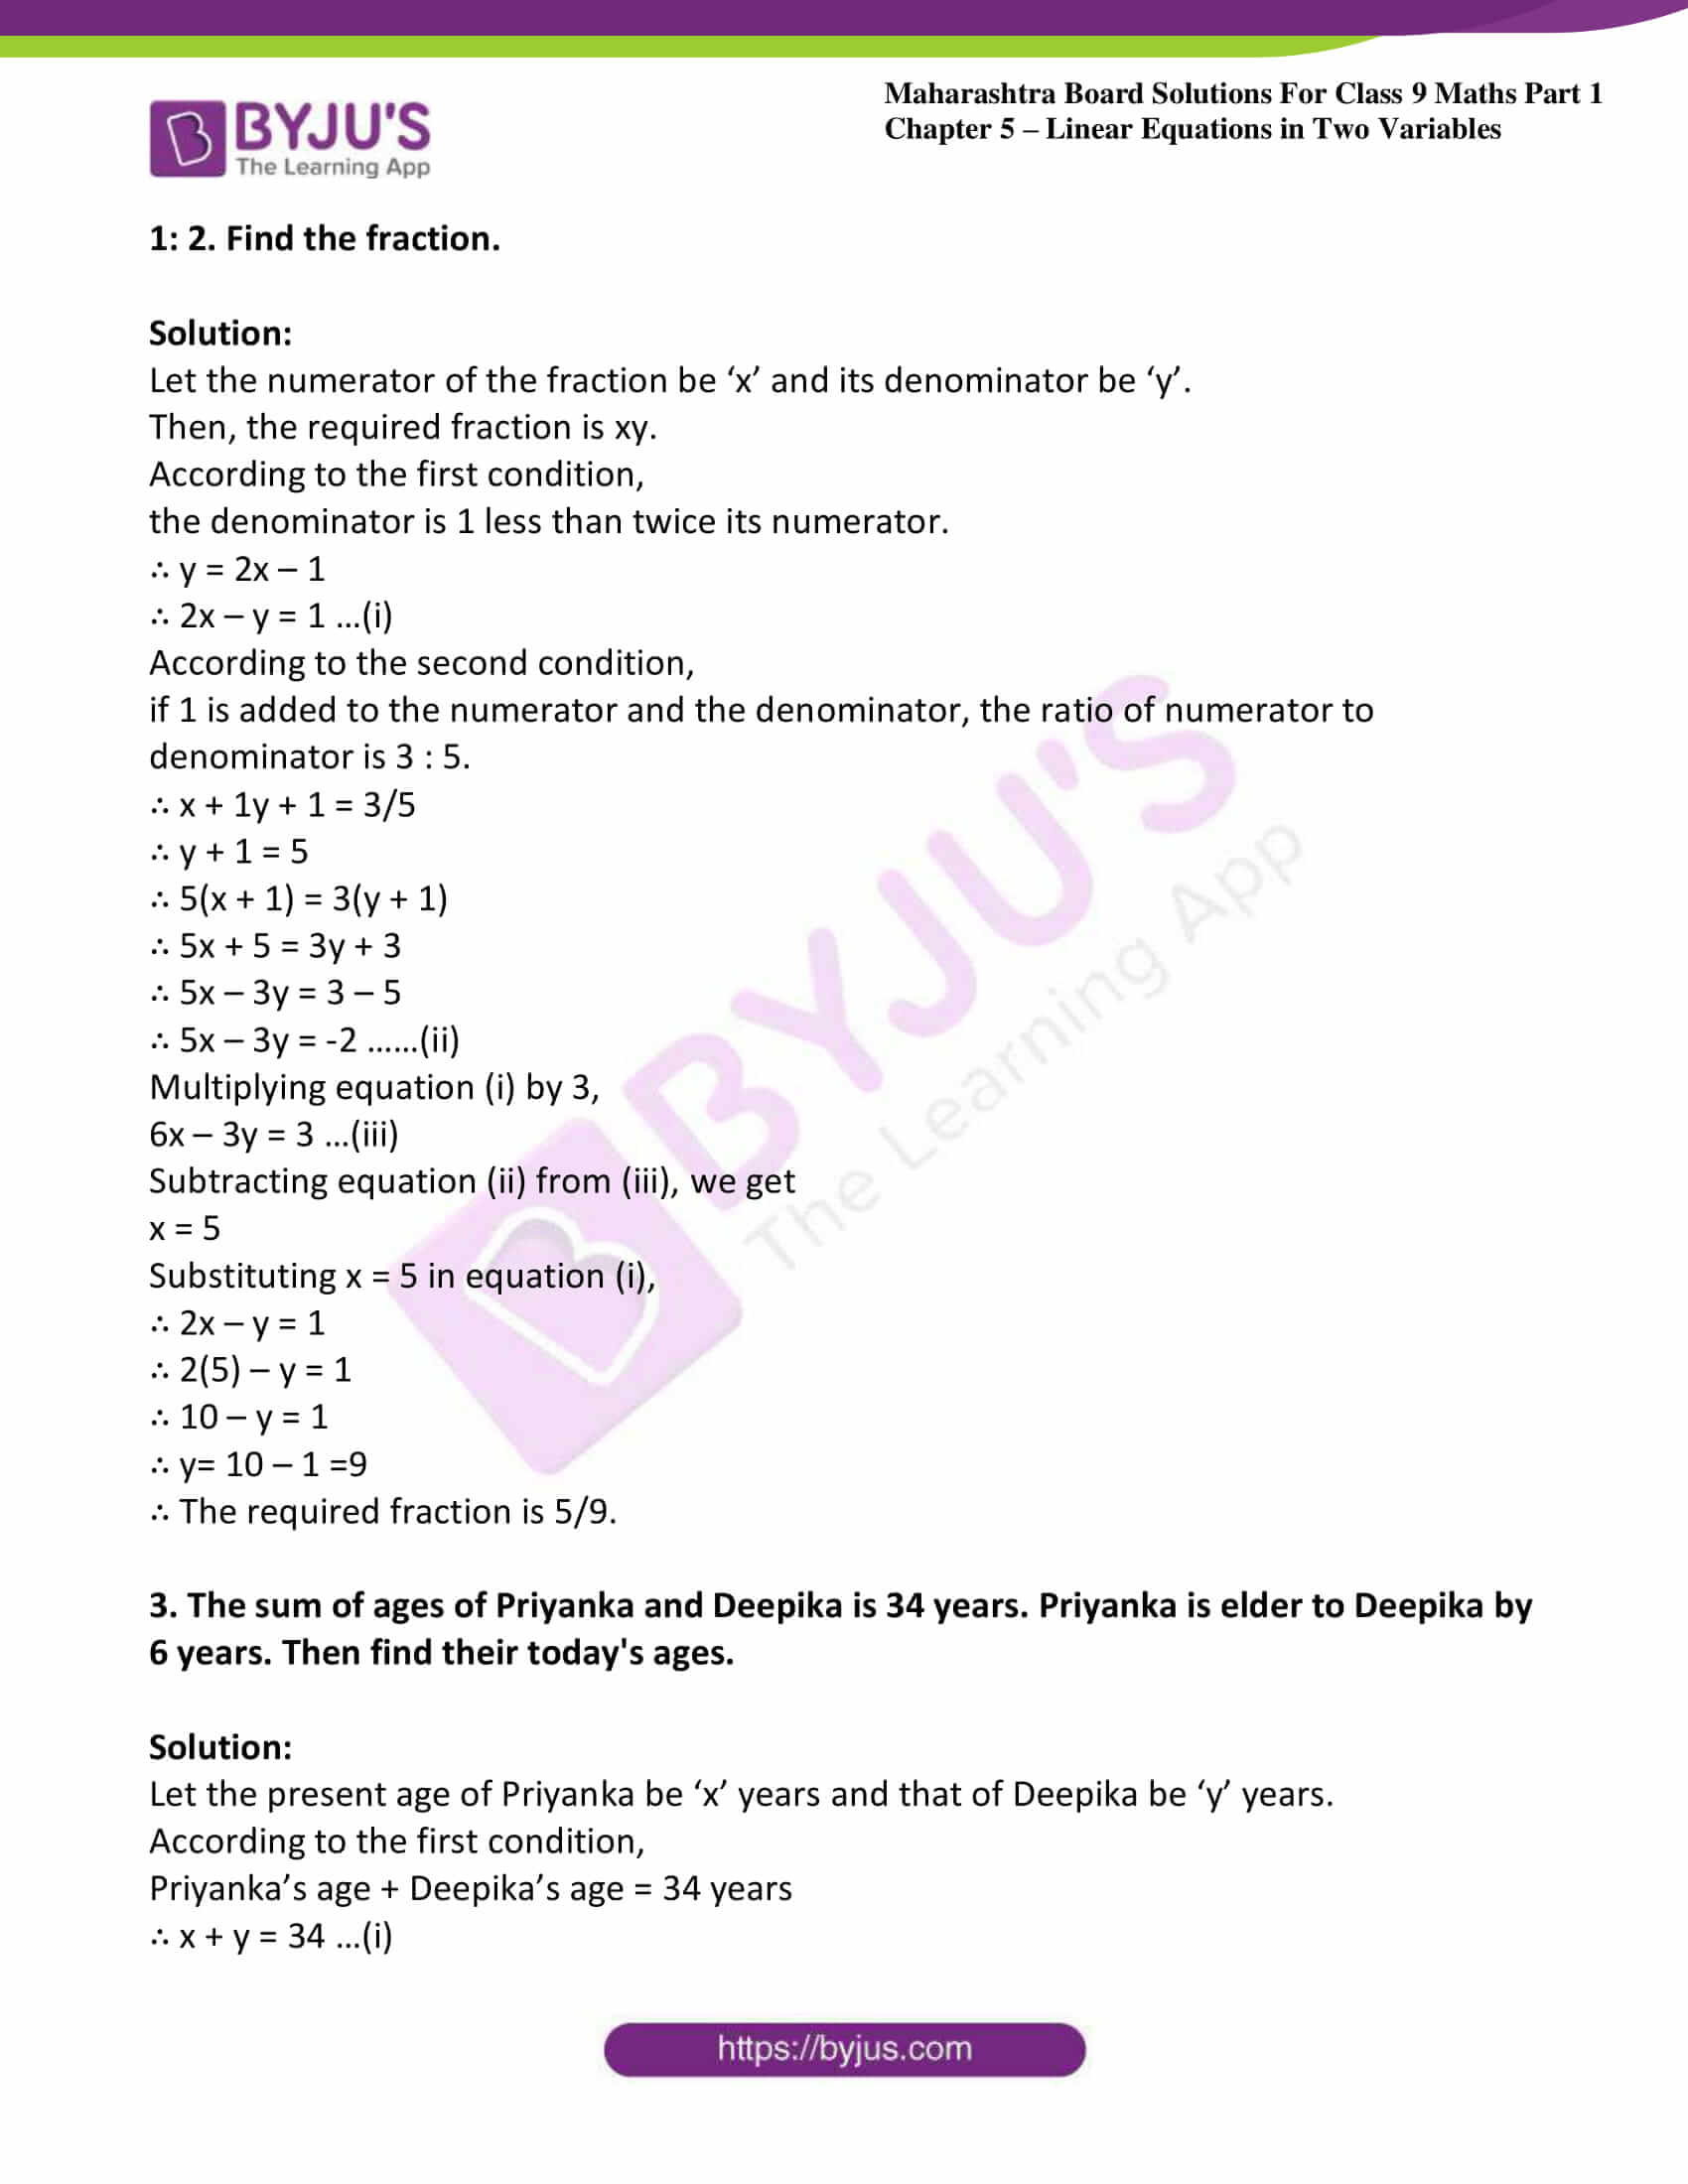 msbshse sol class 9 maths part 1 chapter 5 linear equations in two variables 06